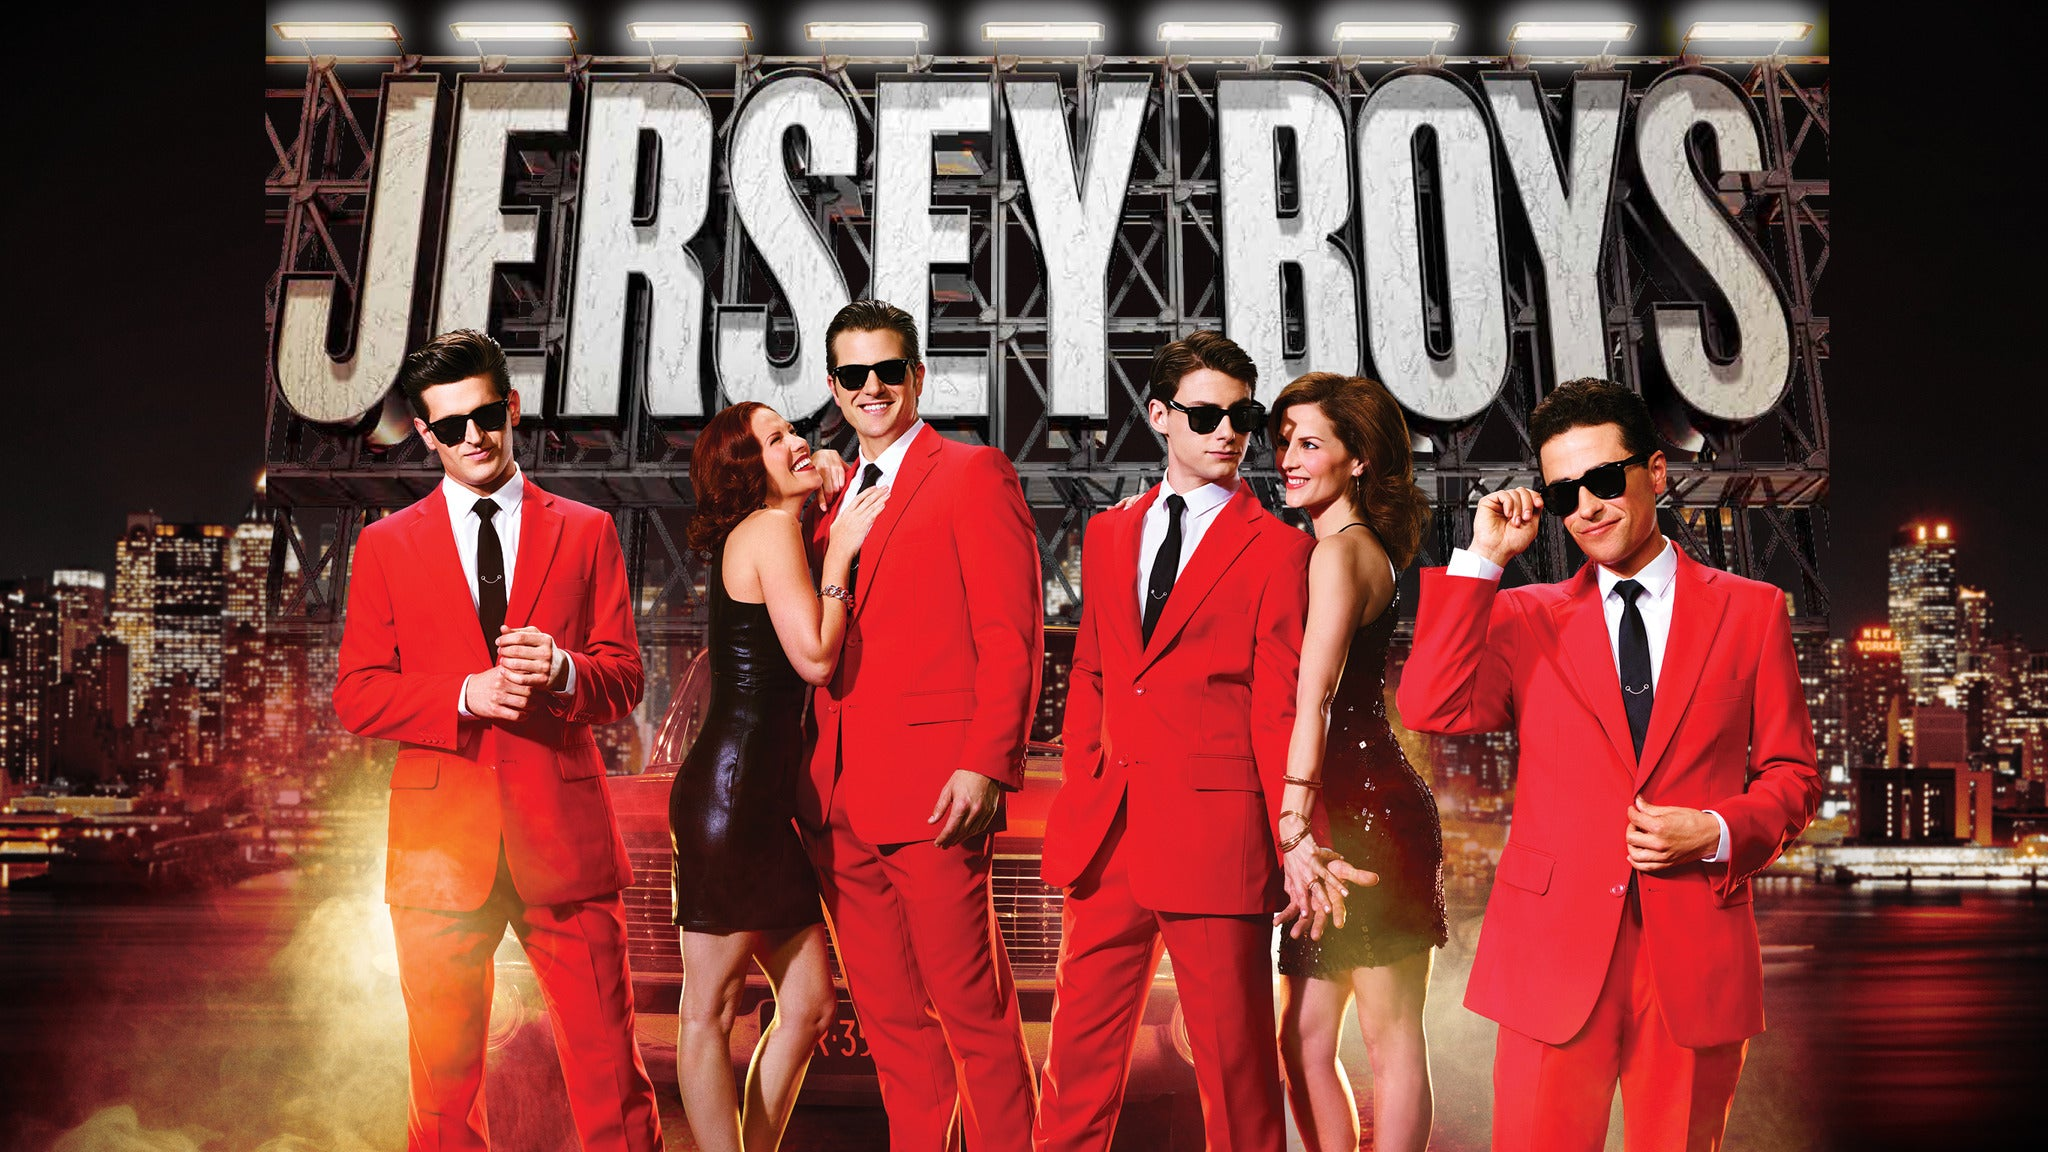 Jersey Boys at Tivoli Theatre